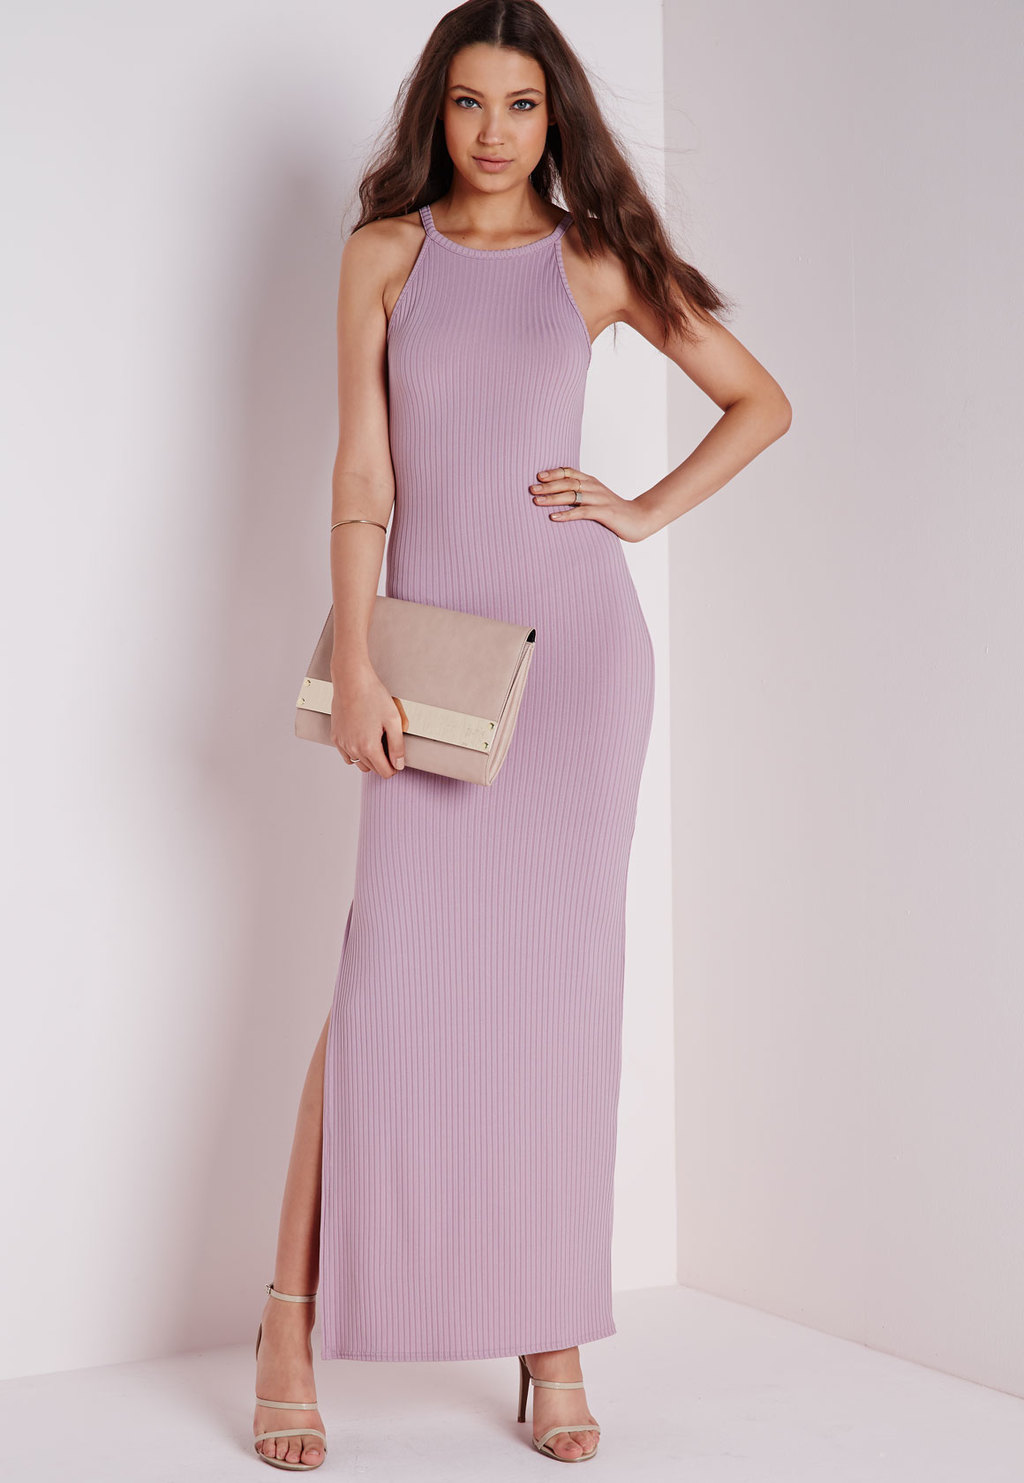 Ribbed Side Split Maxi Dress Mauve, Mauve - neckline: round neck; sleeve style: spaghetti straps; fit: tight; pattern: plain; style: maxi dress; length: ankle length; predominant colour: lilac; occasions: casual, occasion; fibres: polyester/polyamide - stretch; sleeve length: sleeveless; pattern type: fabric; texture group: jersey - stretchy/drapey; season: s/s 2015; wardrobe: highlight